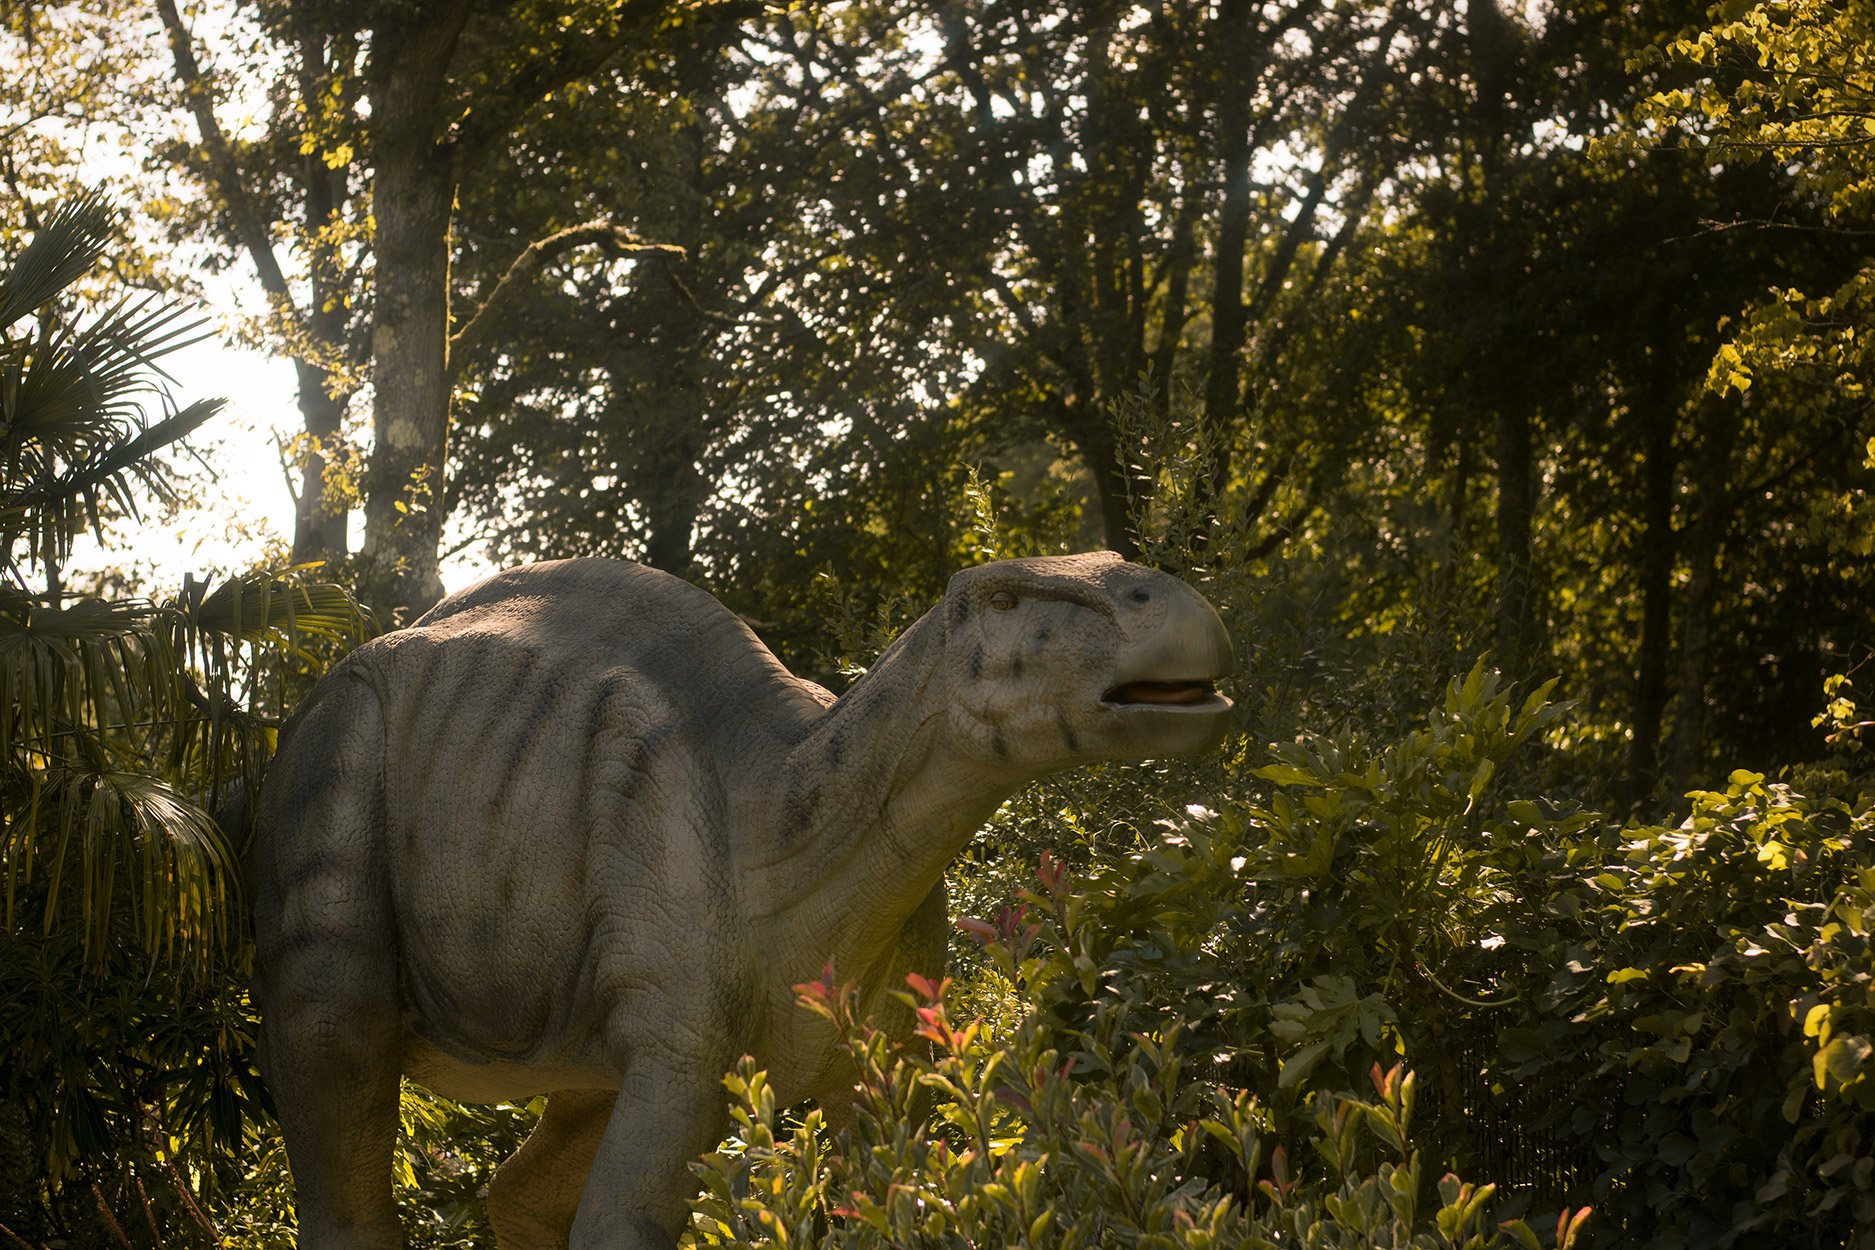 The Lost Kingdom dinosaurs - A family day out to Peppa Pig World and the Lost Kingdom at Paultons Park, Hampshire